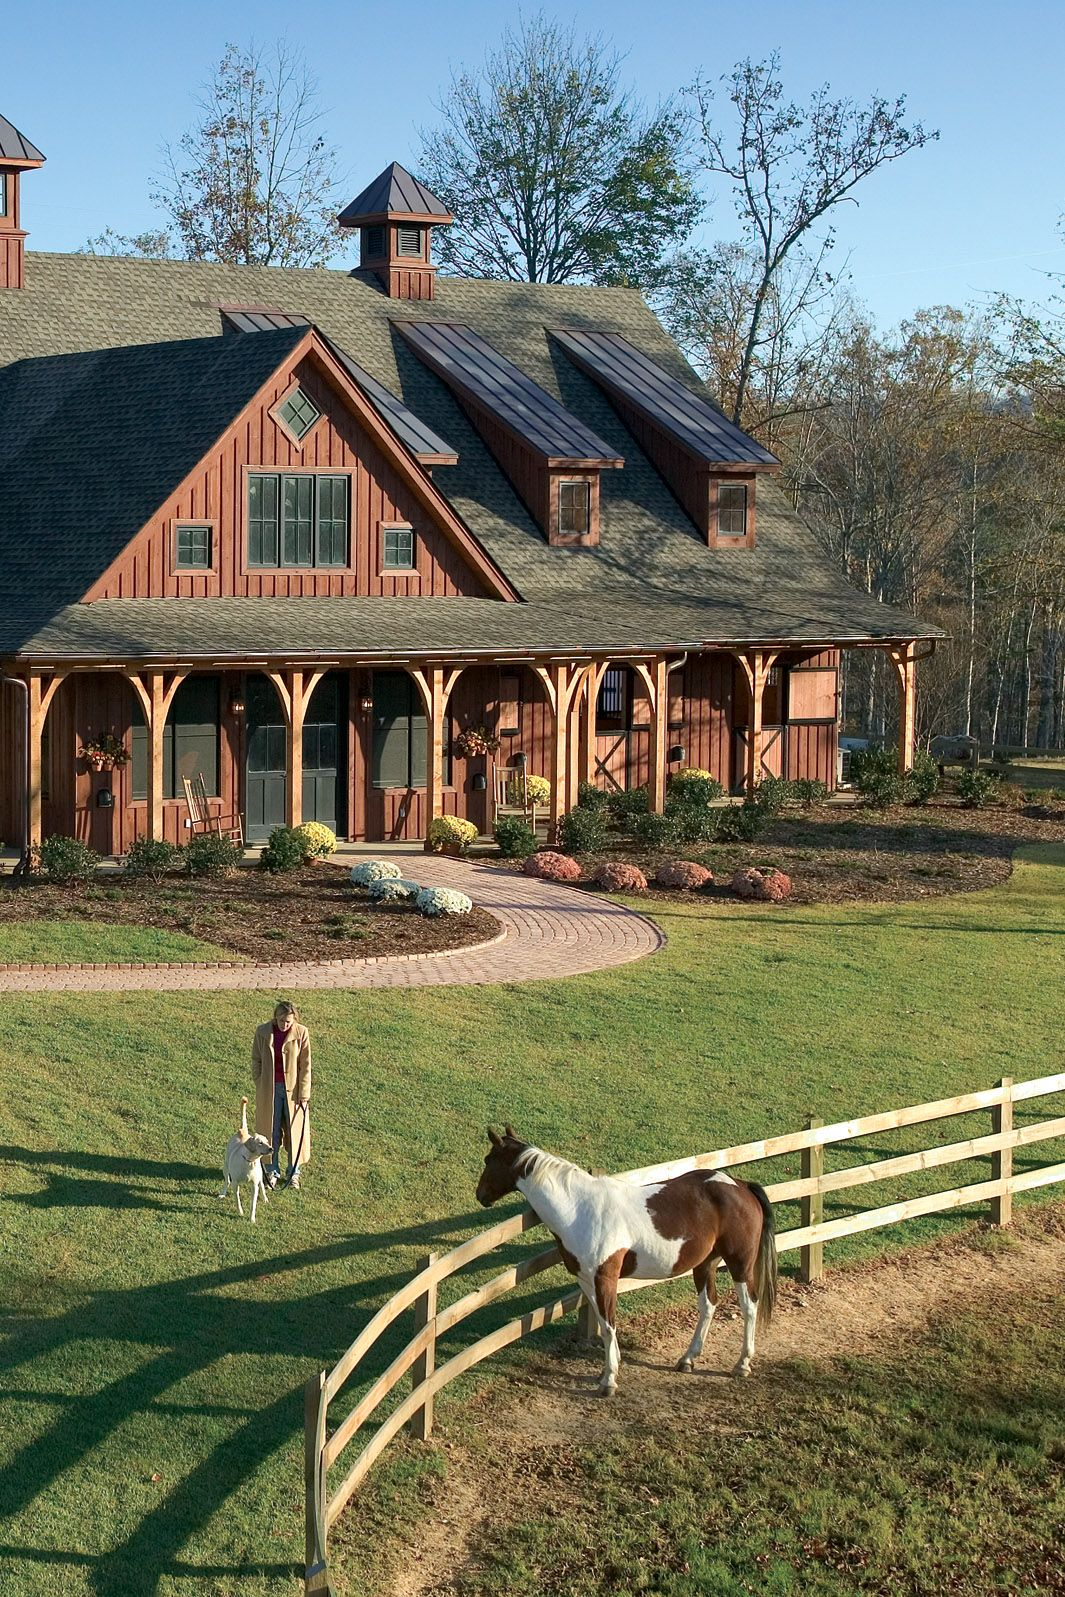 Beautiful Ranch Houses Of Best 25 Centered Riding Ideas On Pinterest Role Play